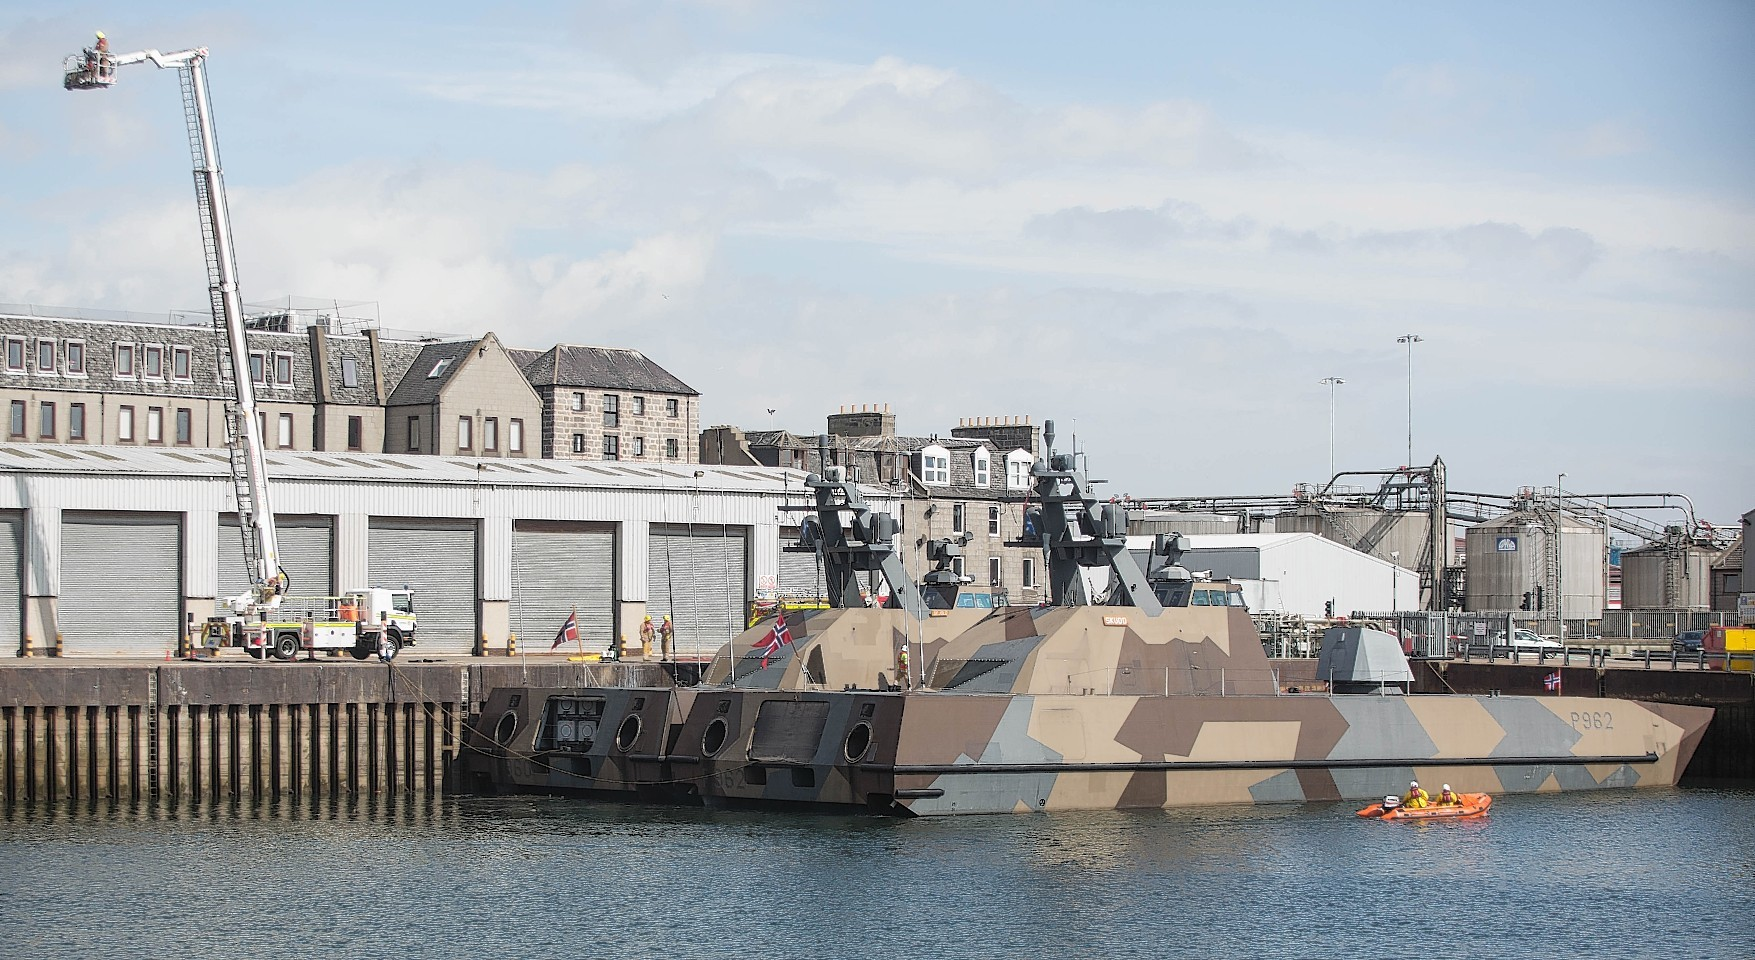 Two state of the art stealth missile boats belonging to the Royal Norwegian Navy docked in Aberdeen.